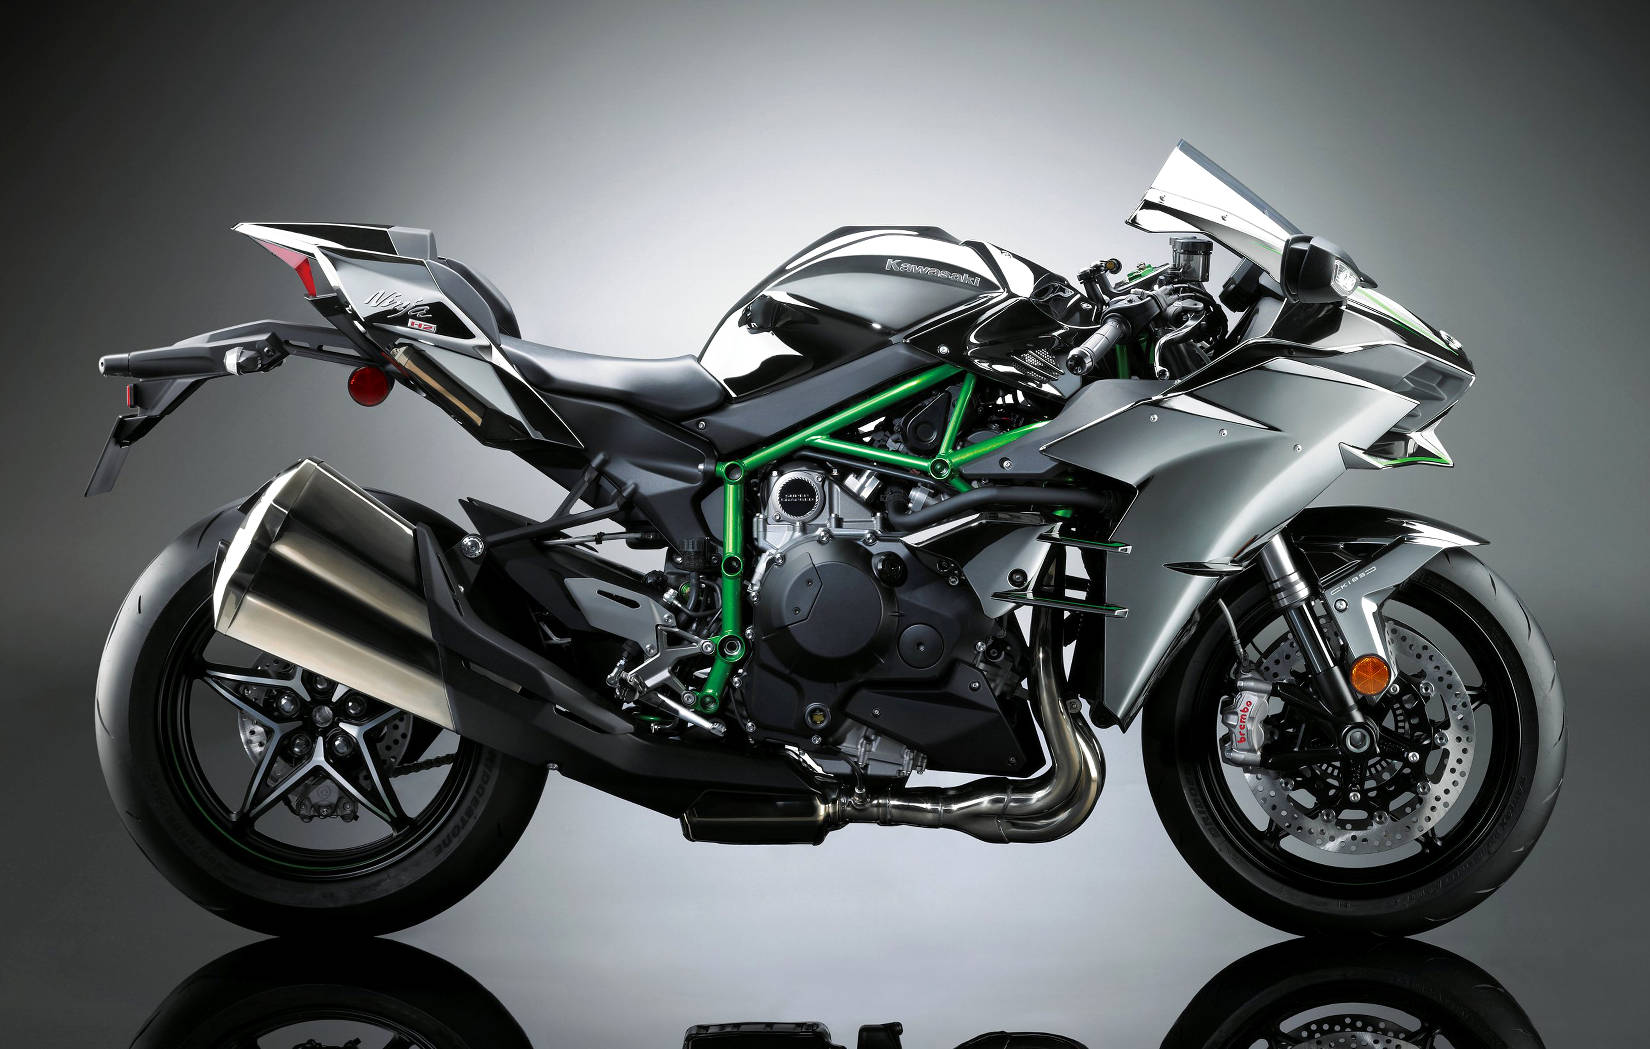 kawasaki ninja h2 arrives new benchmark for road legal performance. Black Bedroom Furniture Sets. Home Design Ideas